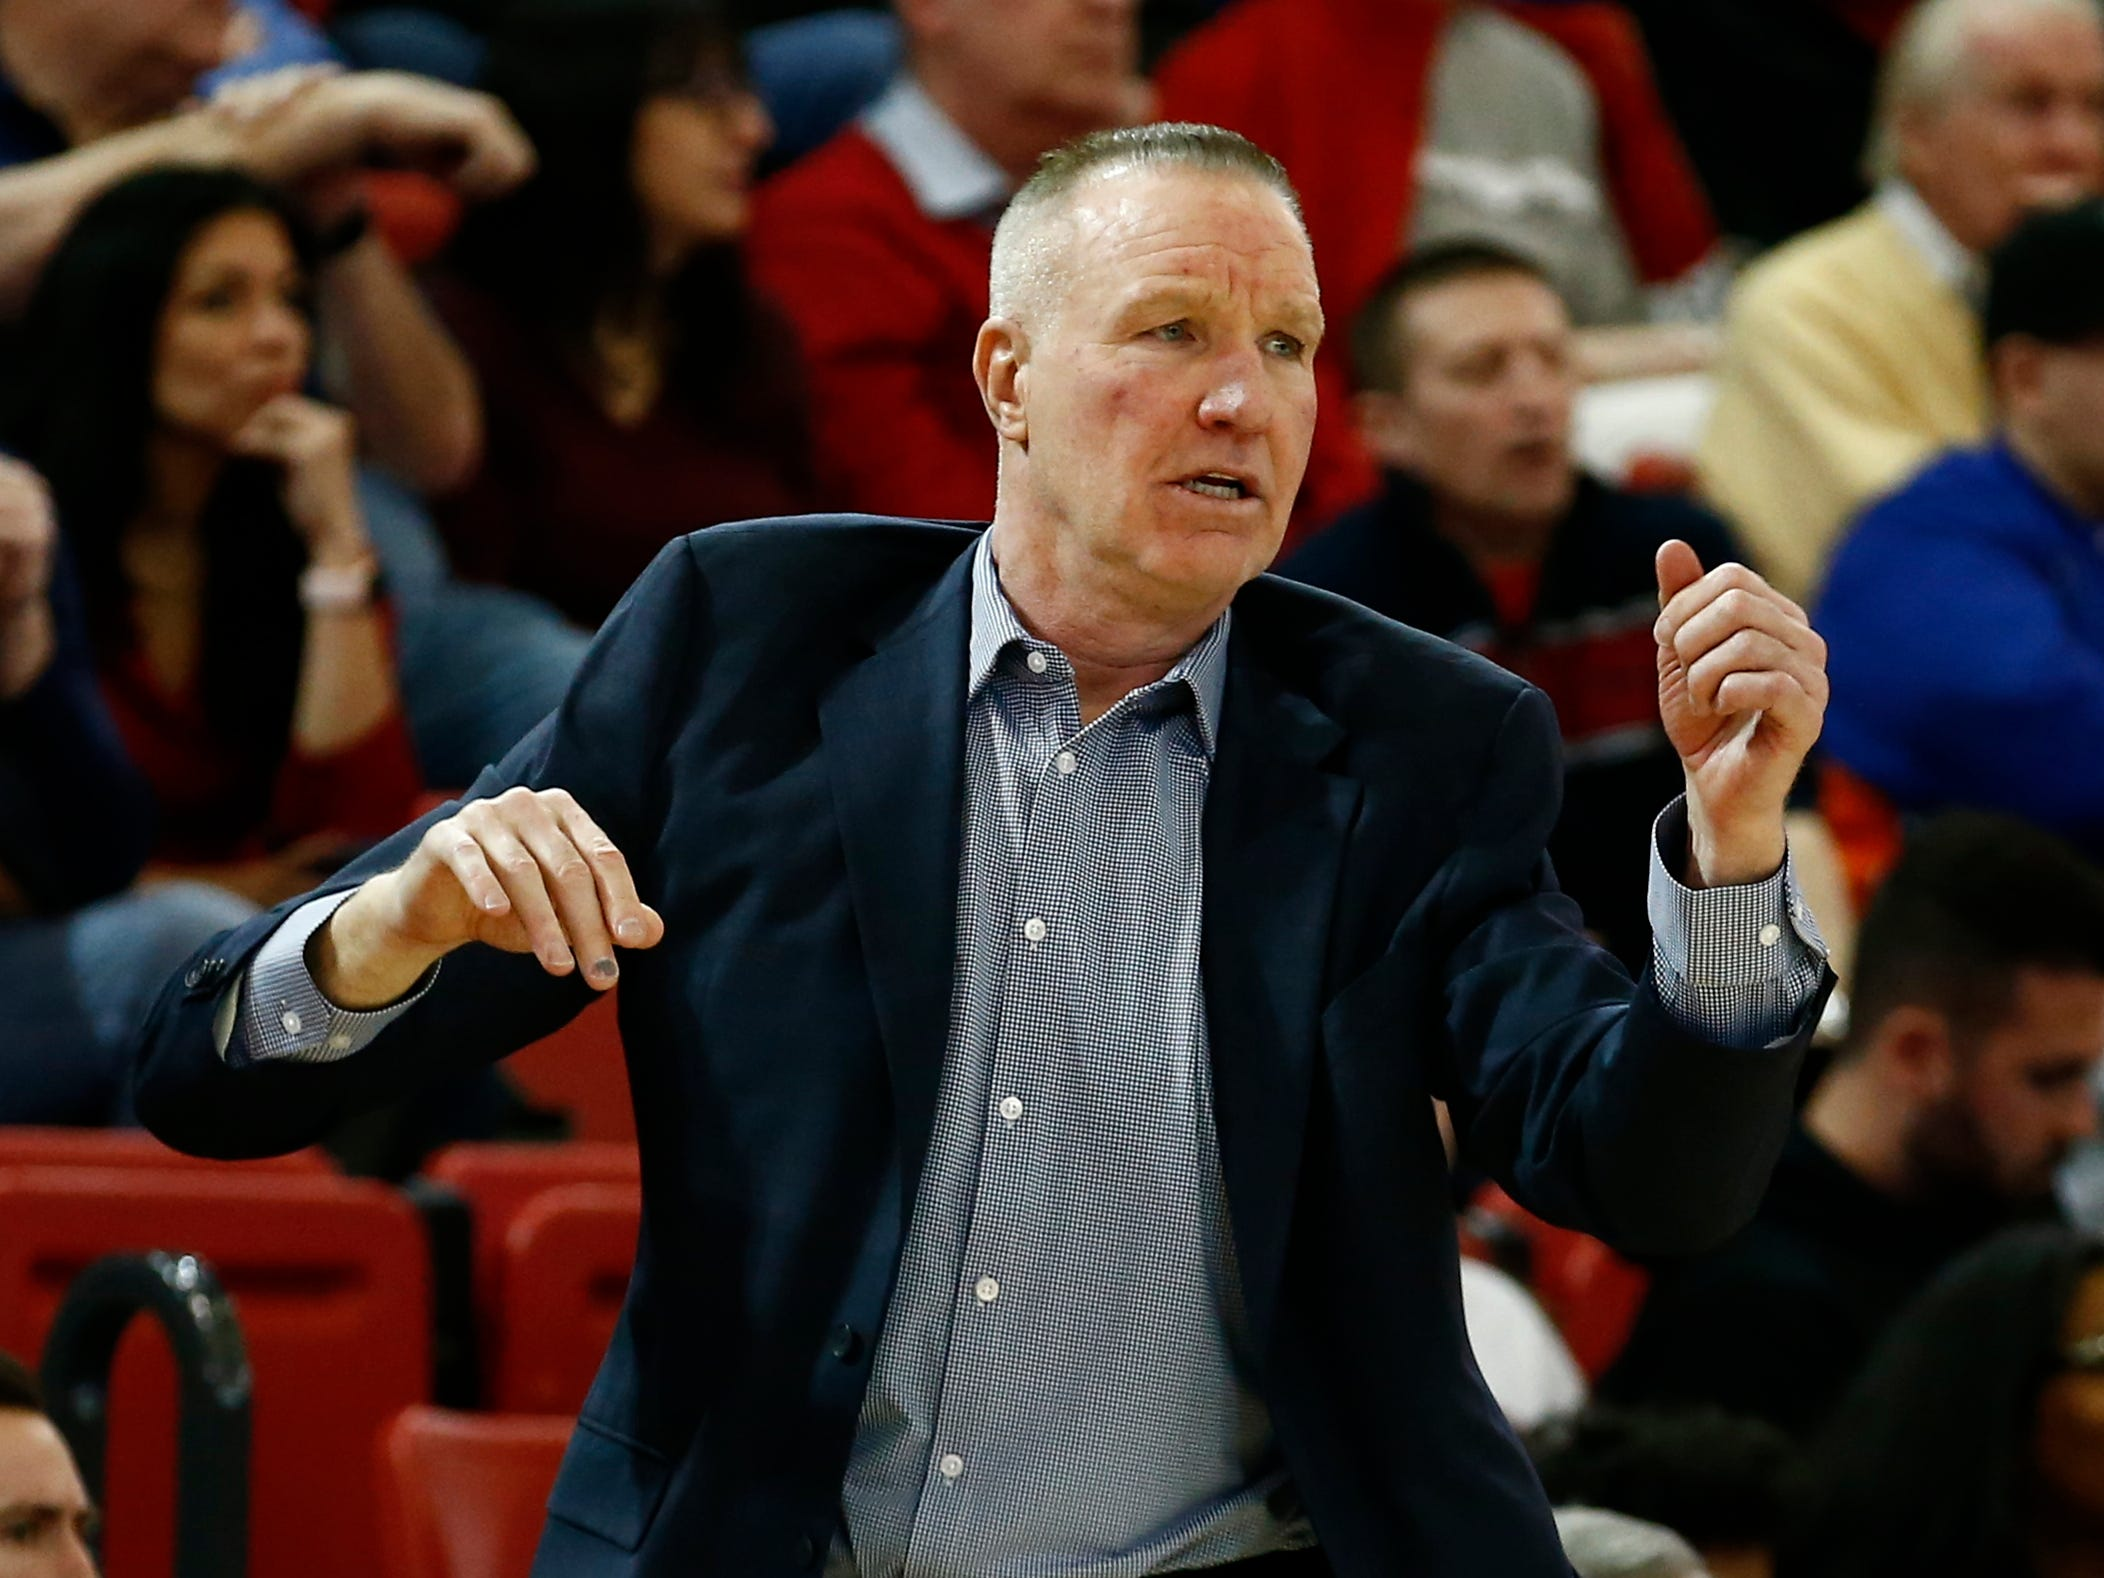 Jan 1, 2019; Queens, NY, USA; St. John's Red Storm head coach Chris Mullin reacts during the first half against the Marquette Golden Eagles at Carnesecca Arena. Mandatory Credit: Nicole Sweet-USA TODAY Sports